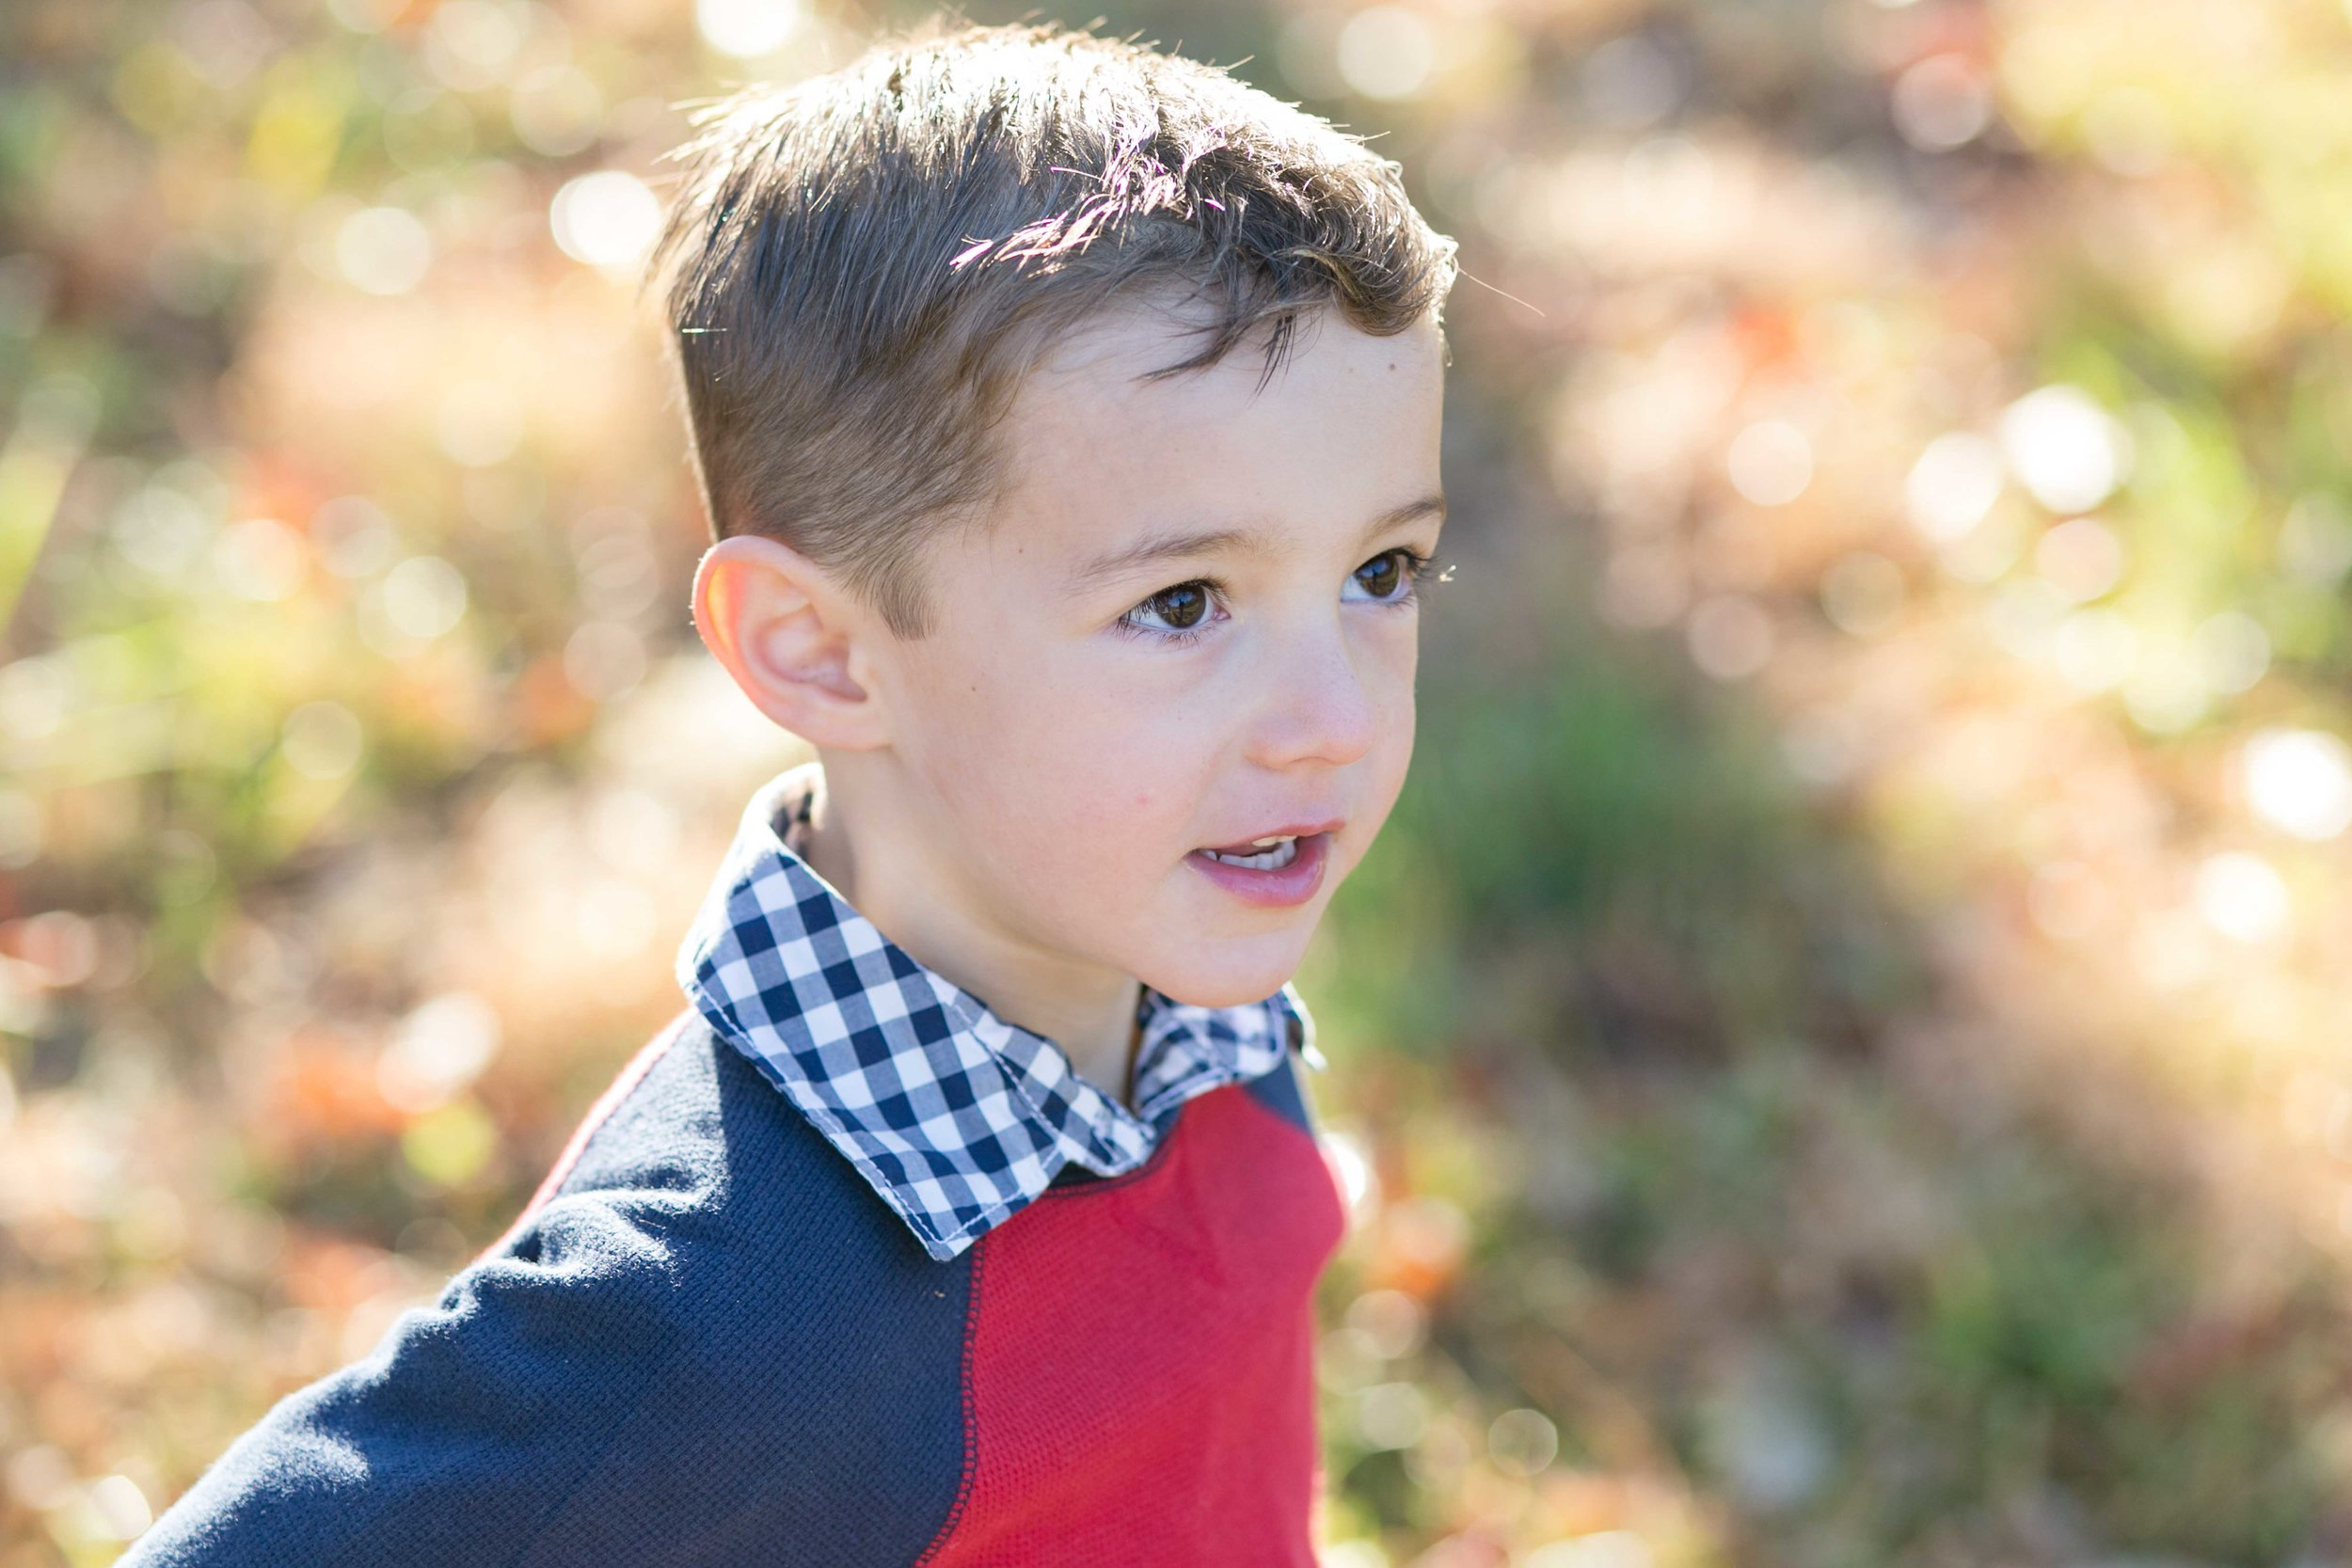 Lewis_Morris_Park_Fall_Family_Photography-3.jpg